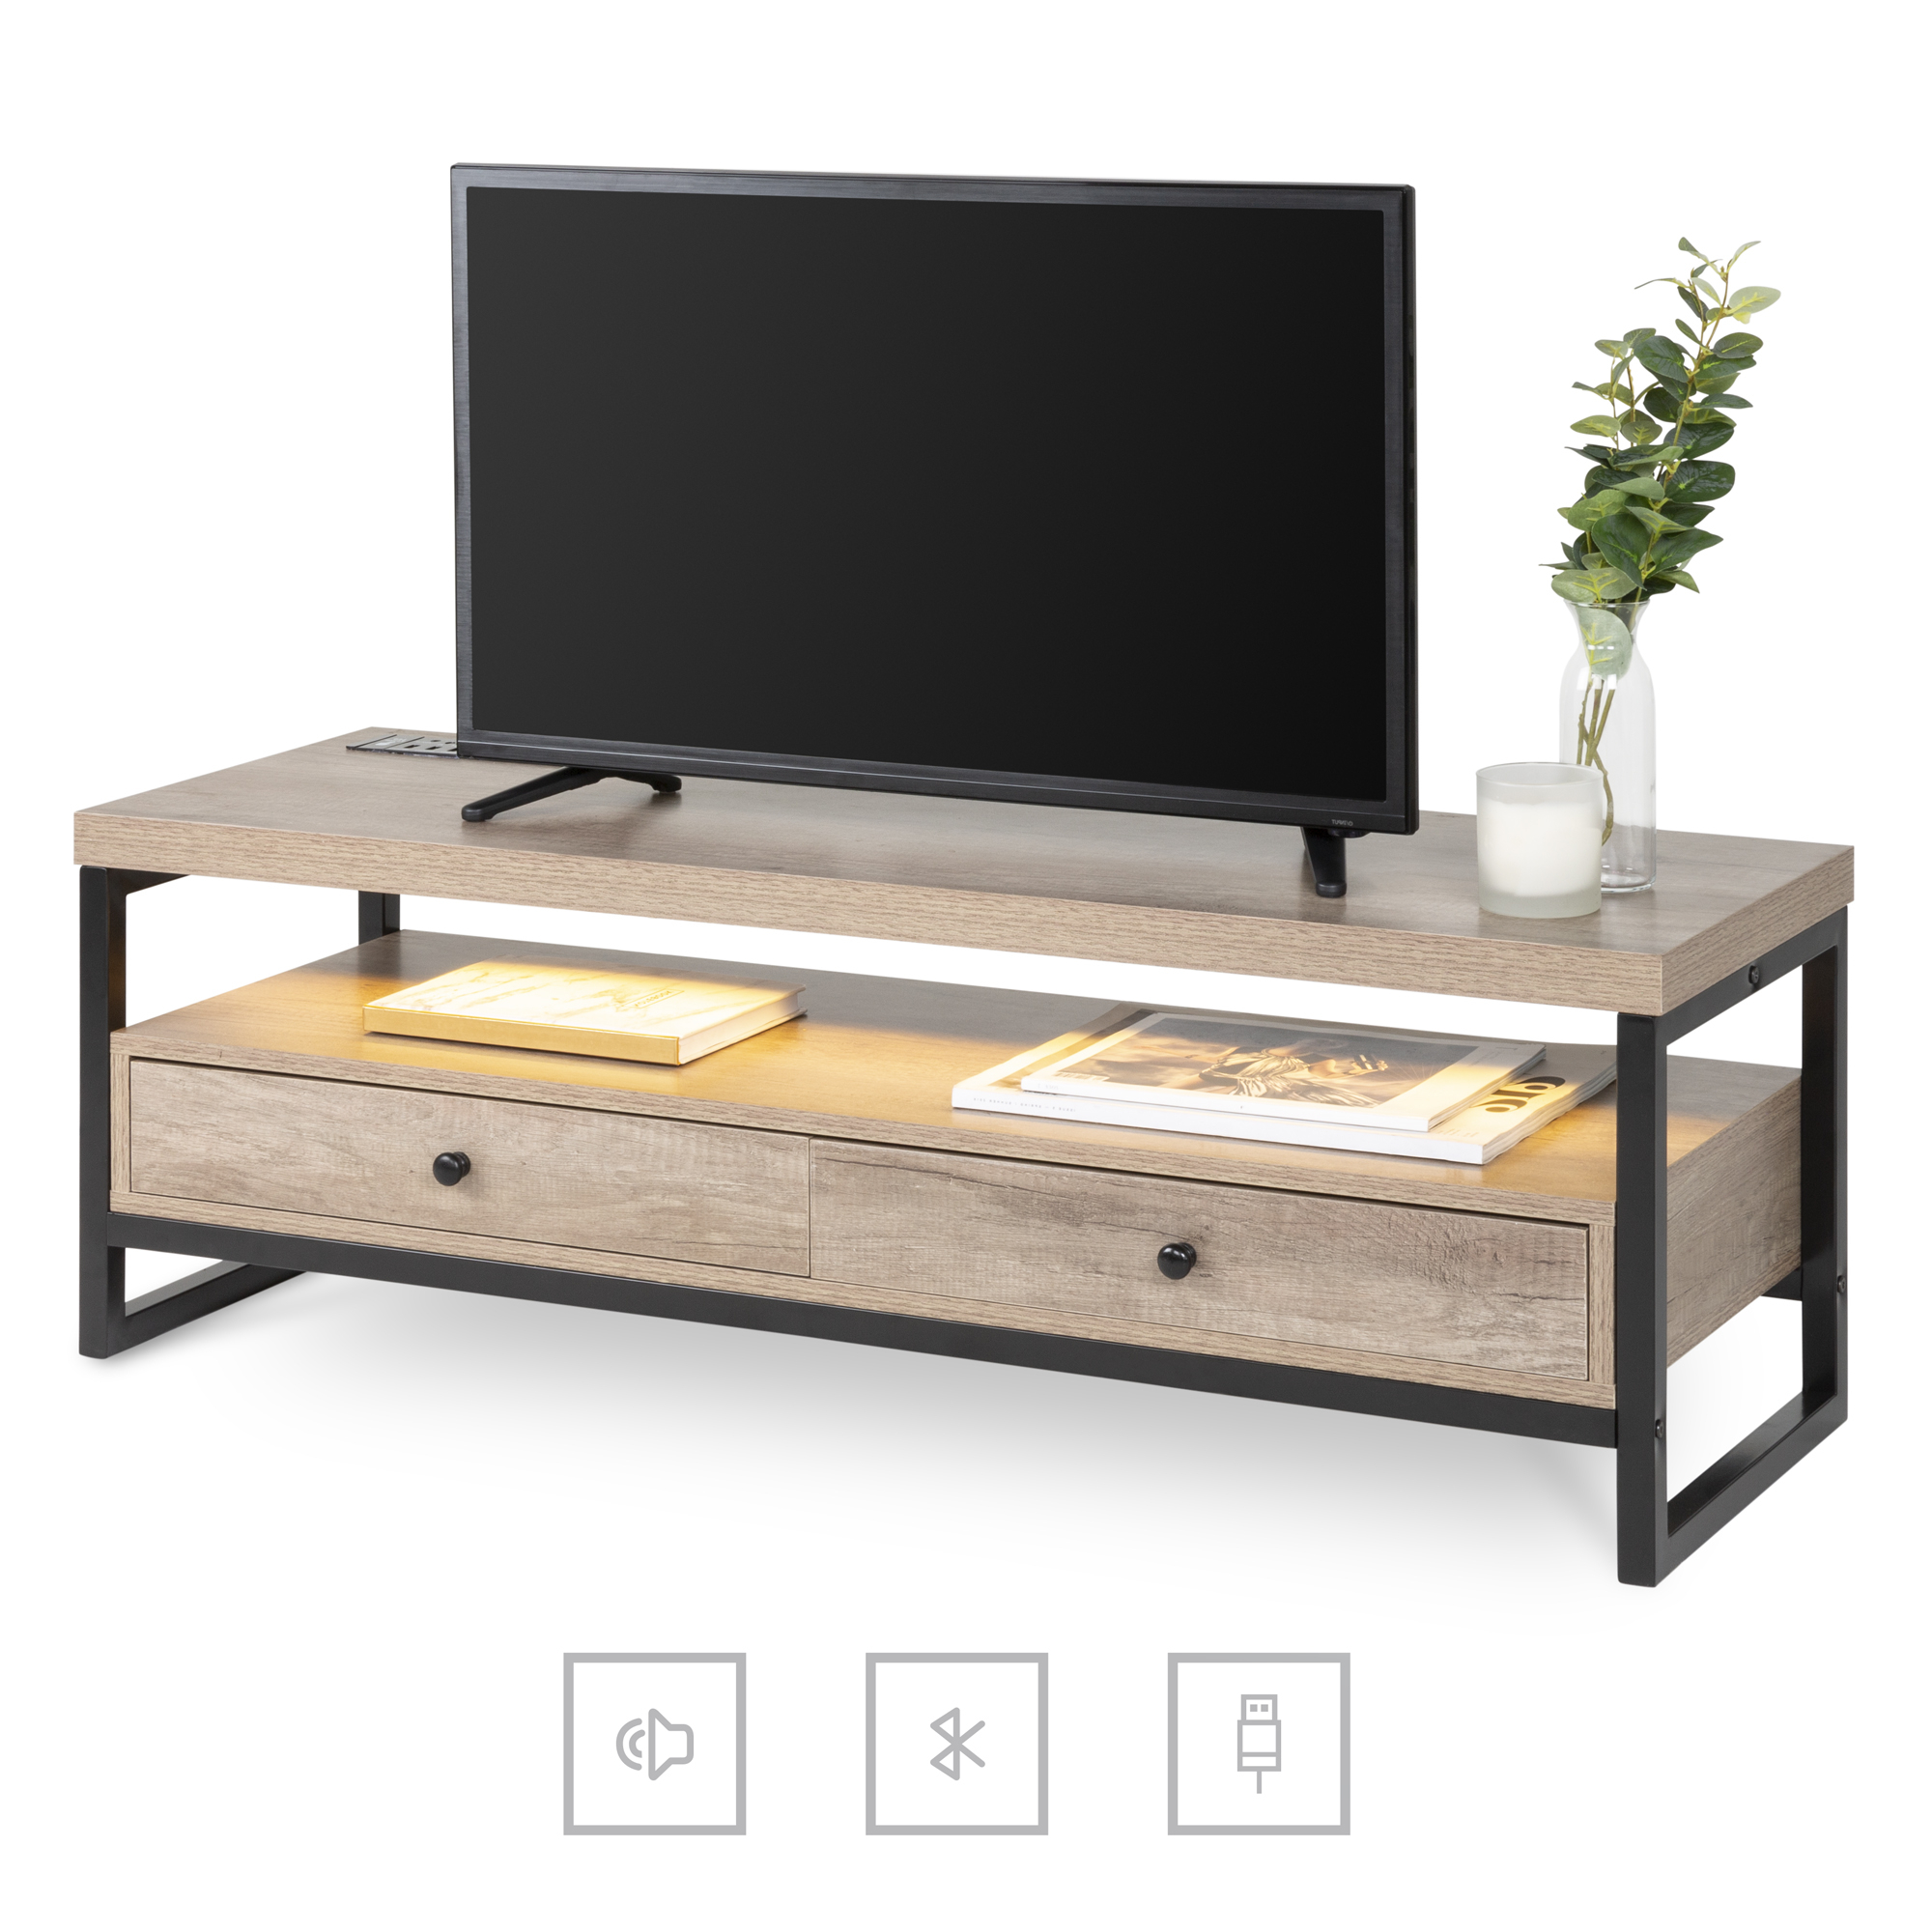 Best Choice Products Modern Bluetooth Tv Storage Stand In 57'' Tv Stands With Led Lights Modern Entertainment Center (View 18 of 20)